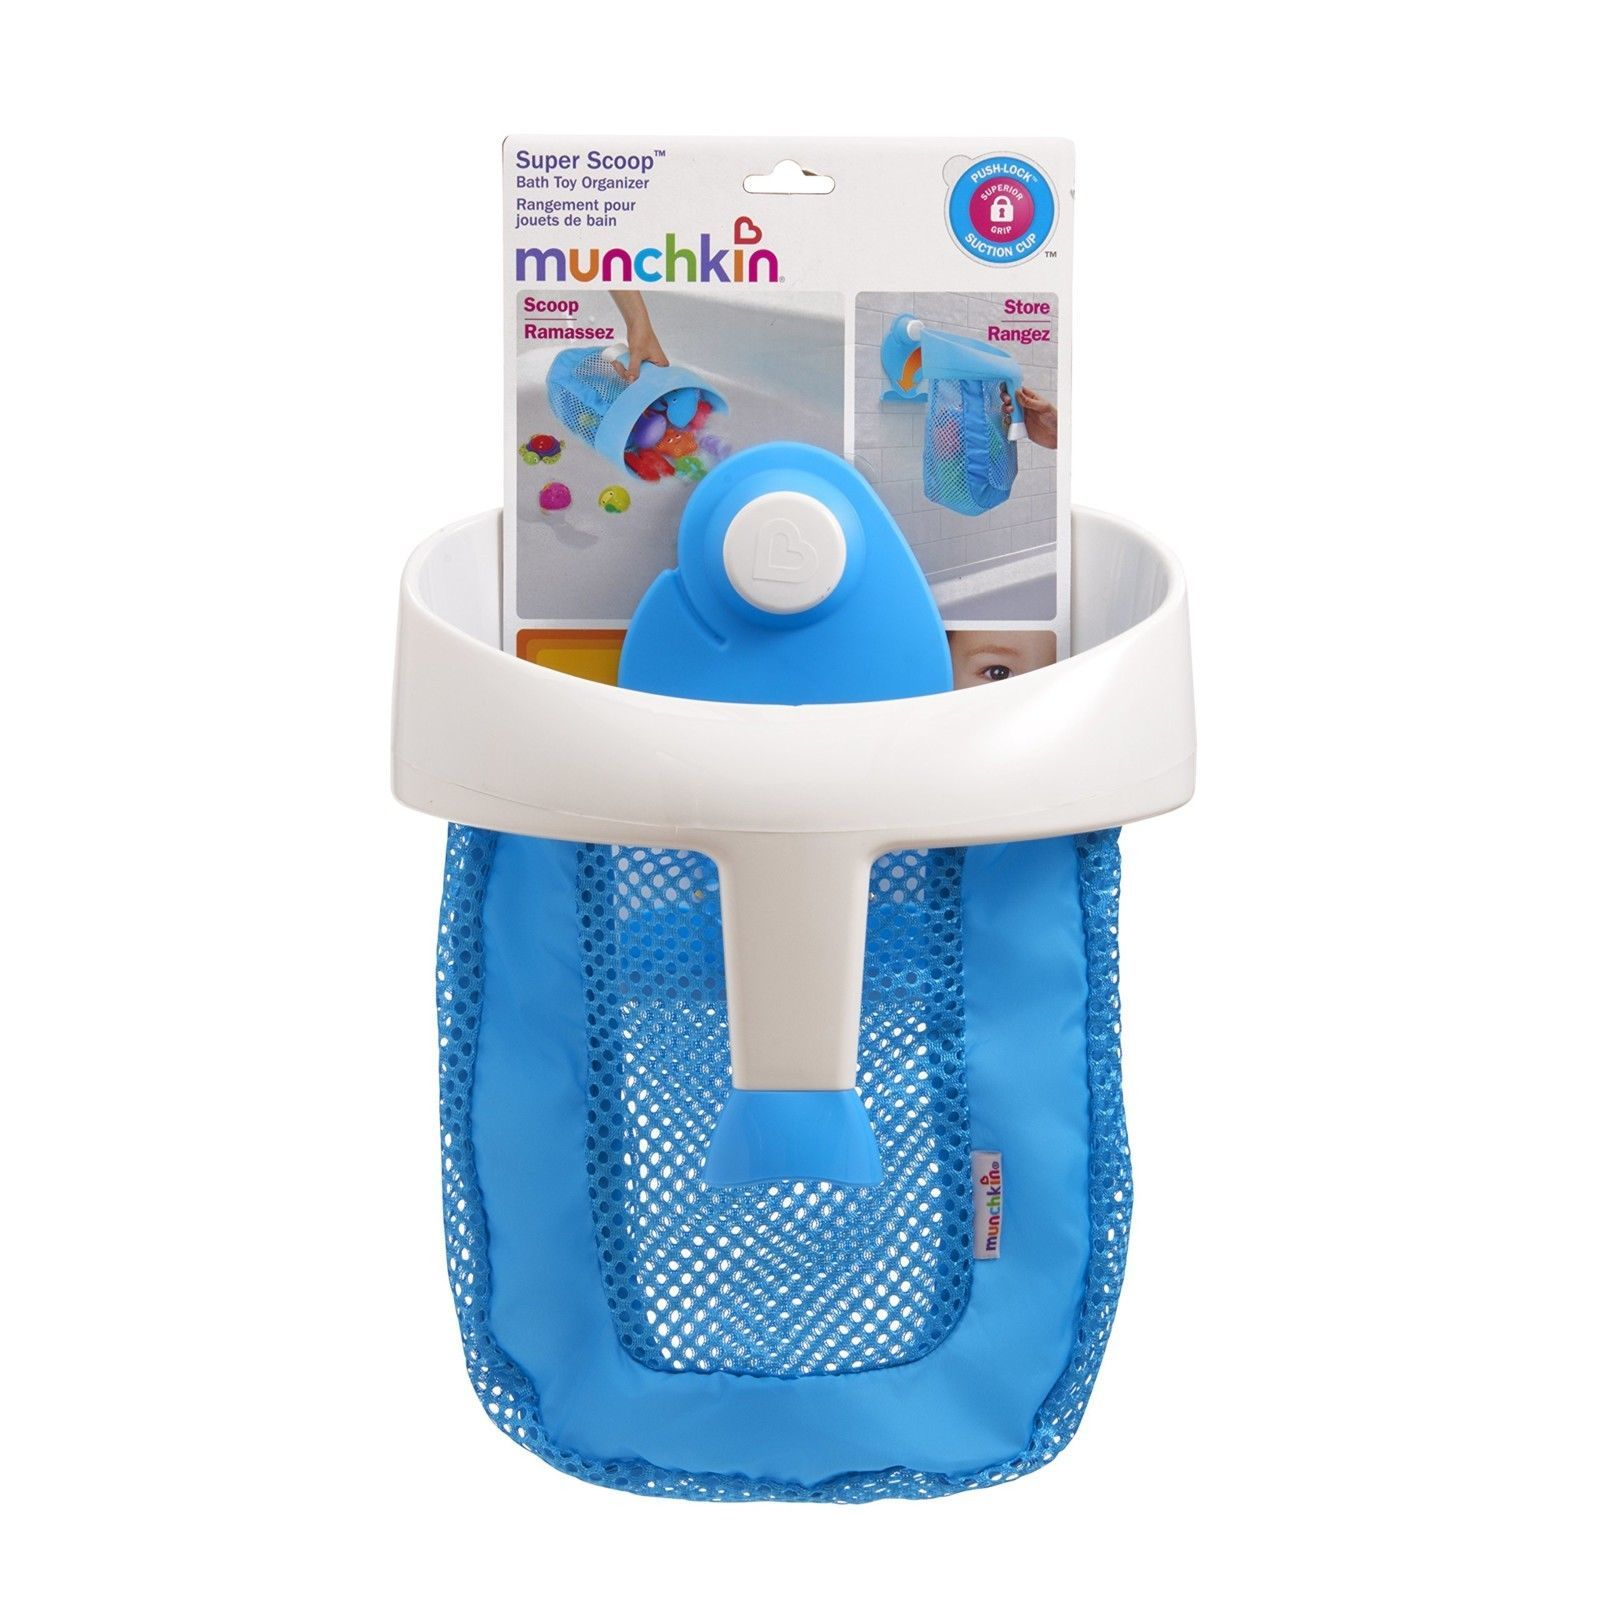 Super Scoop Baby Bath Toys Push-Lock Mount and 13 similar items